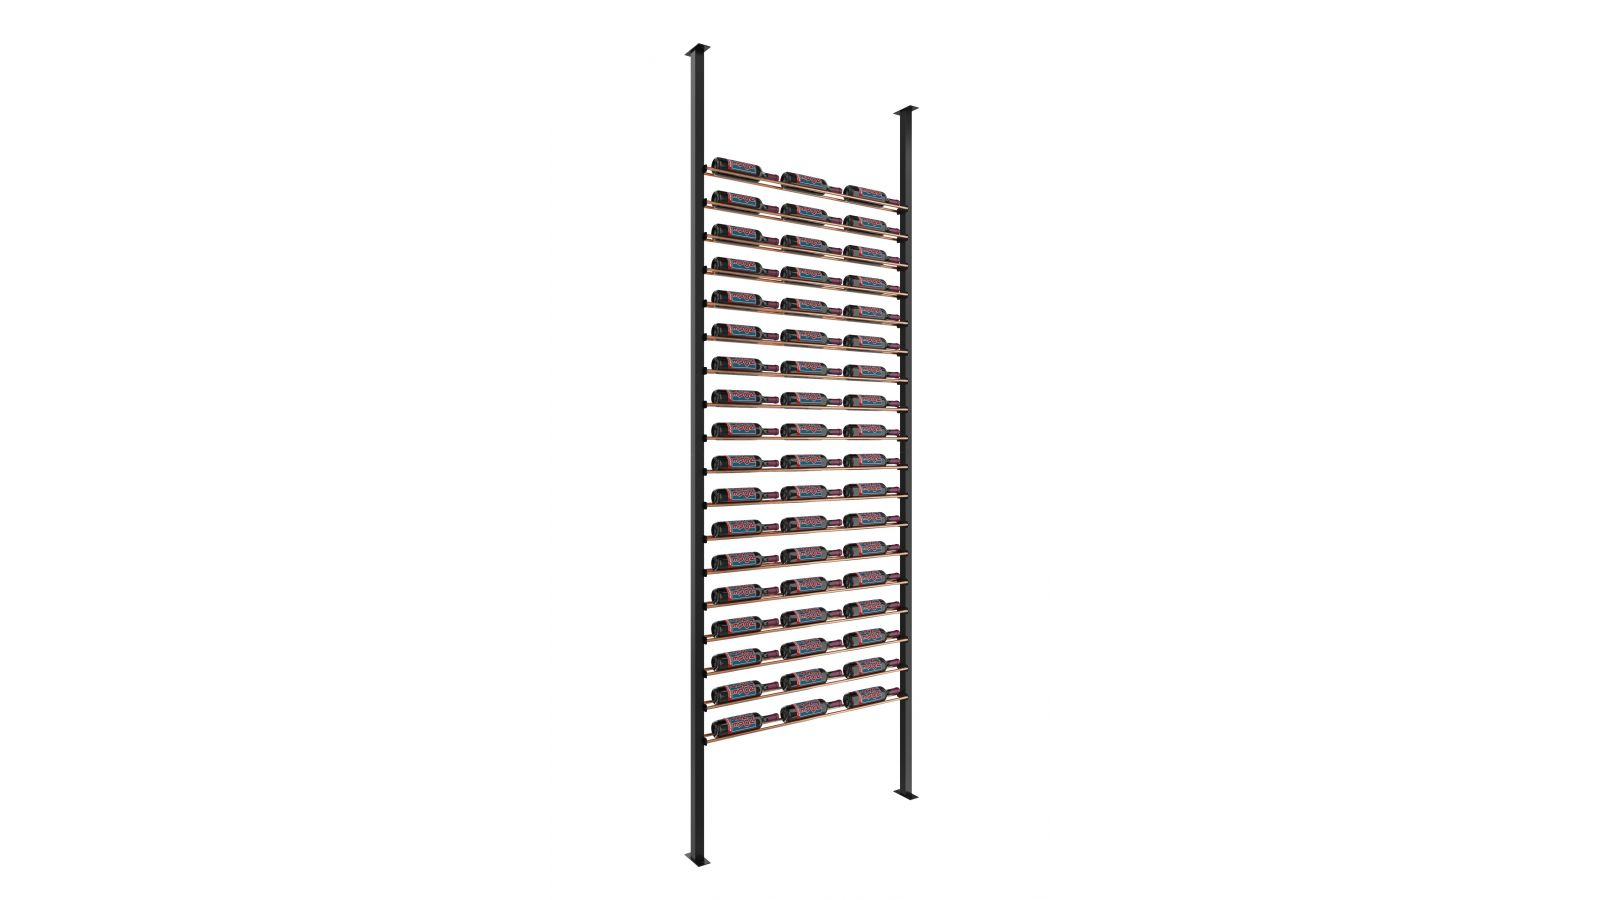 VintageView Low Profile Floating Wine Rack System